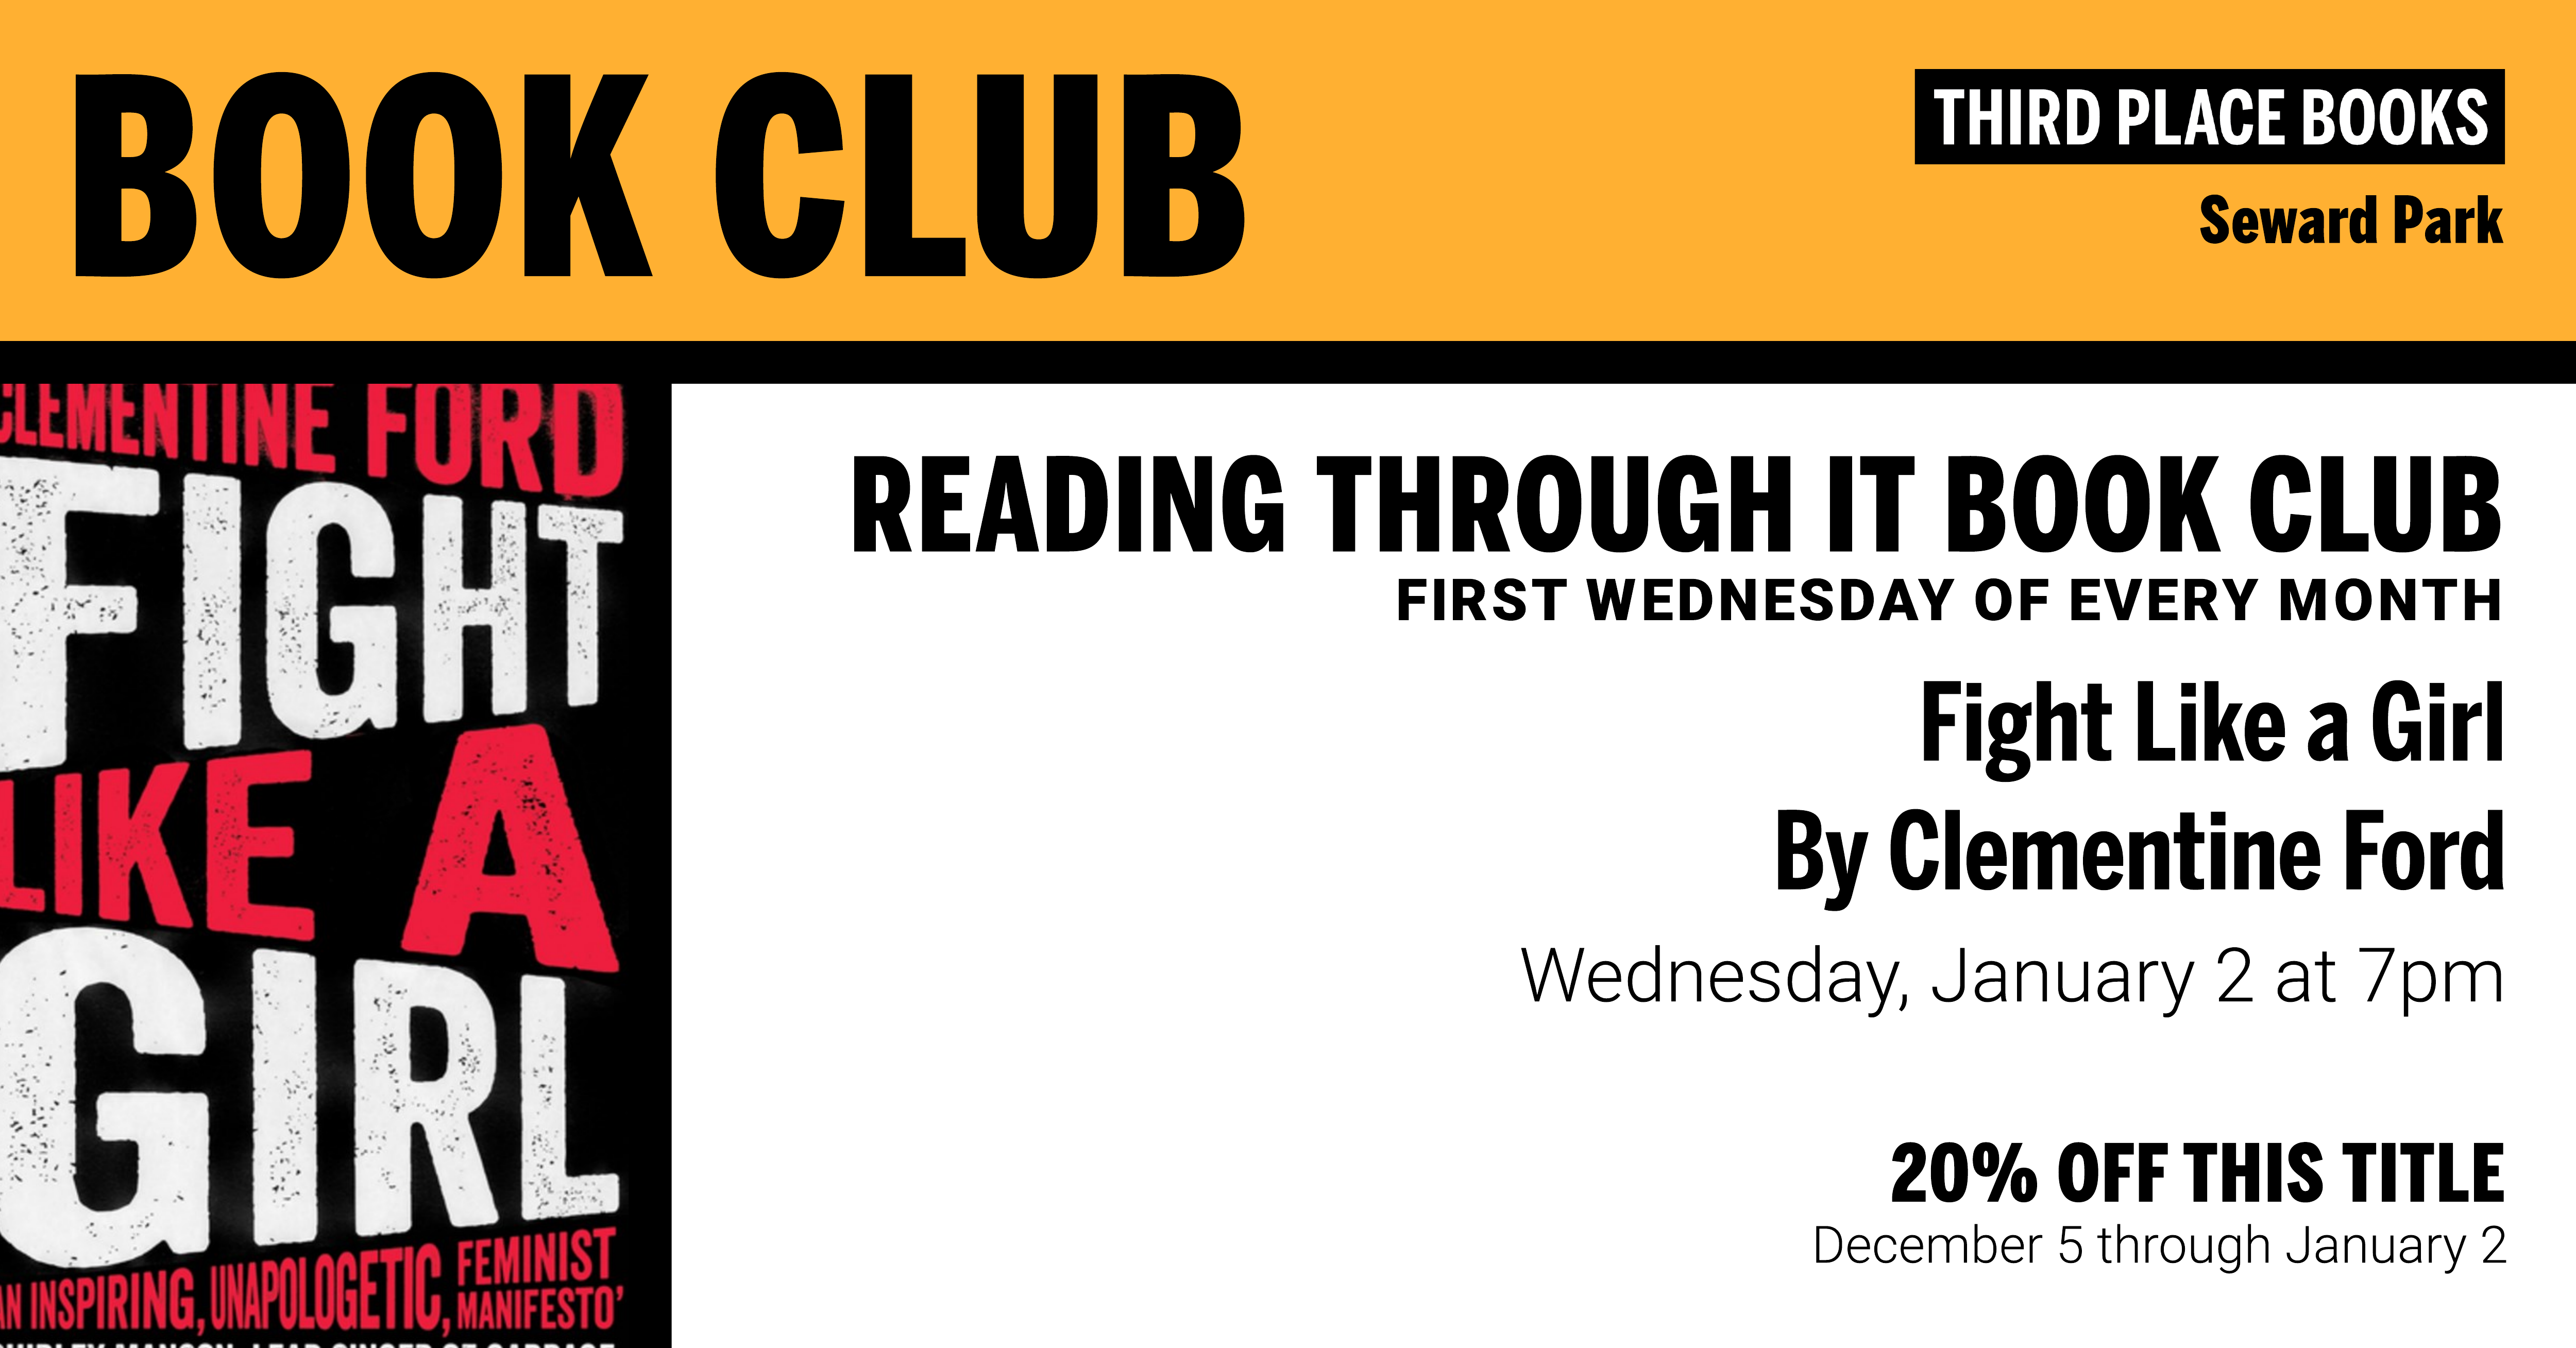 Reading Through It Book Club discussing Fight Like a Girl on Wednesday, January 2nd at 7pm